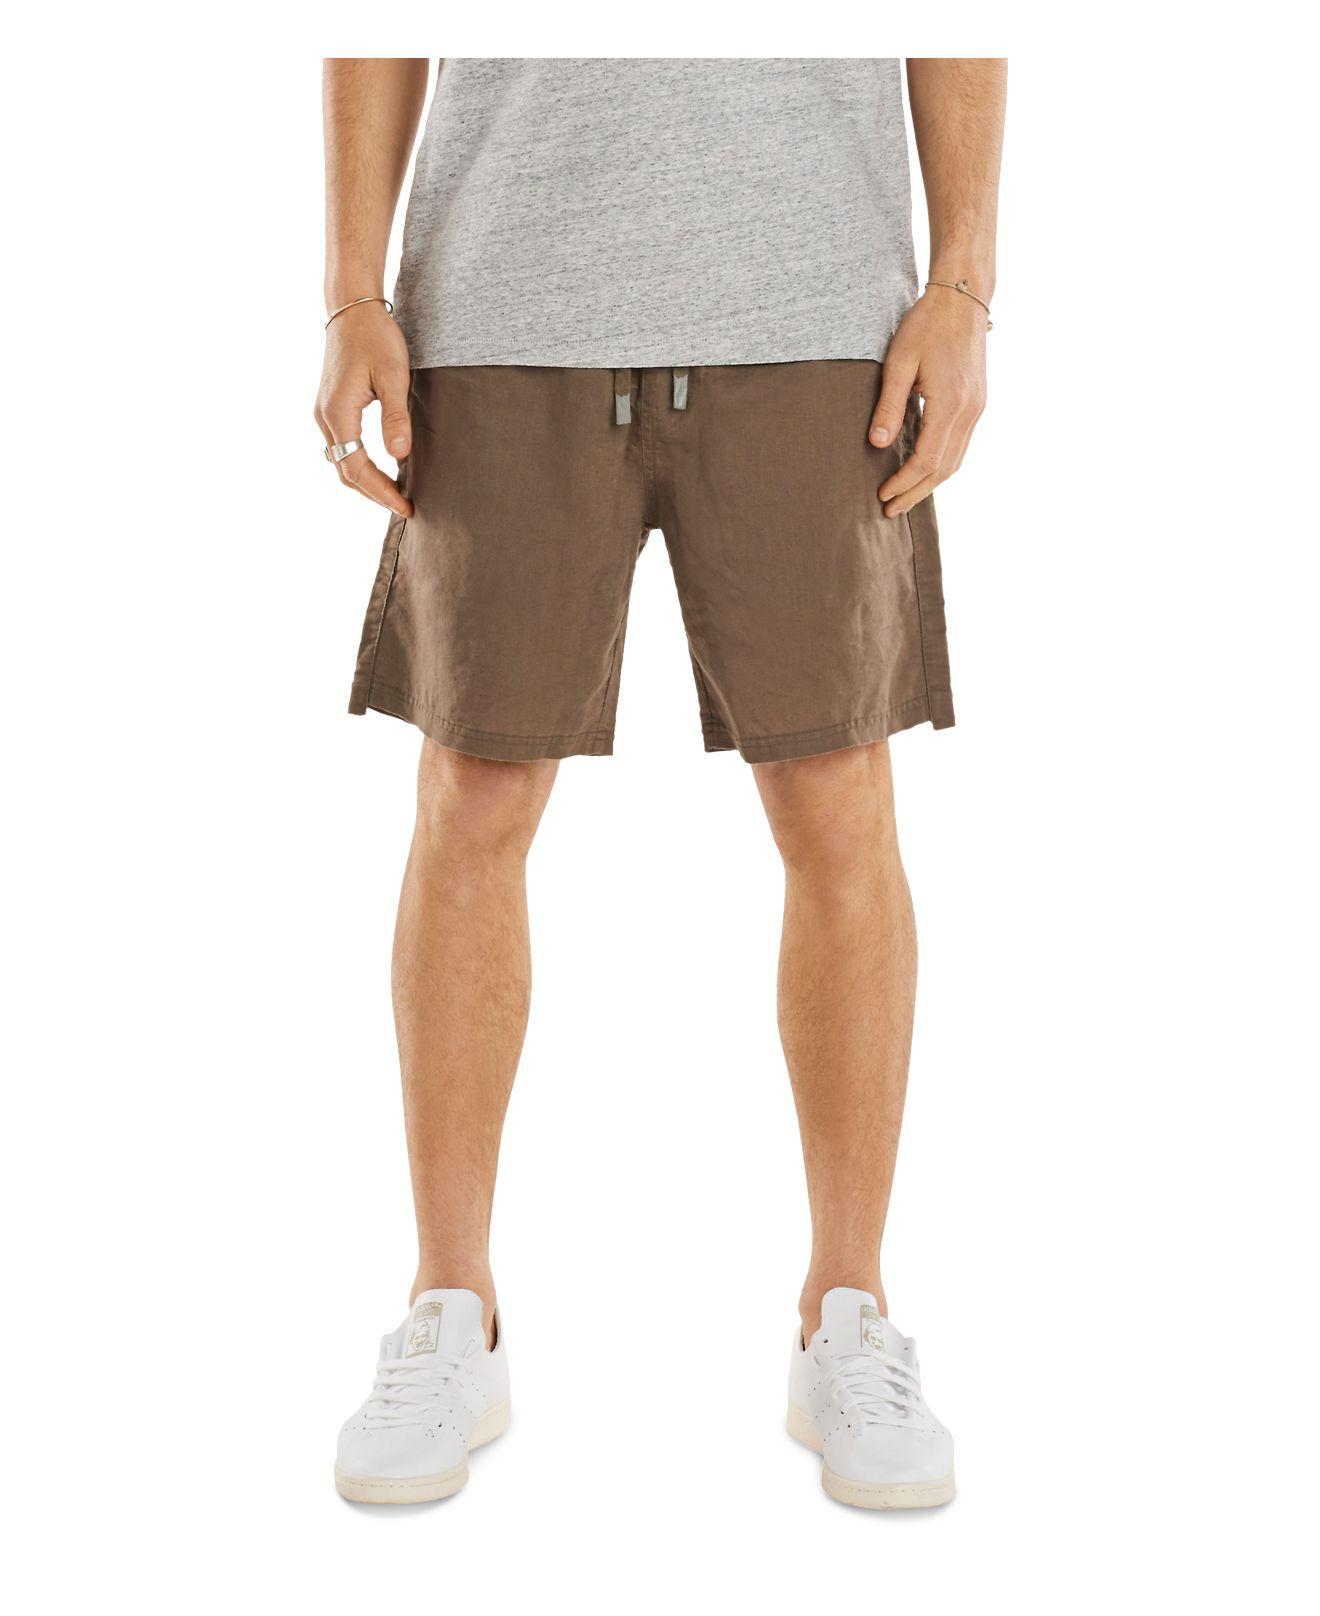 Shop Orlebar Brown men's designer swim shorts online. Holiday clothes you can wear every day. Designed in London, made in Europe, worn across the World. Orlebar Brown.